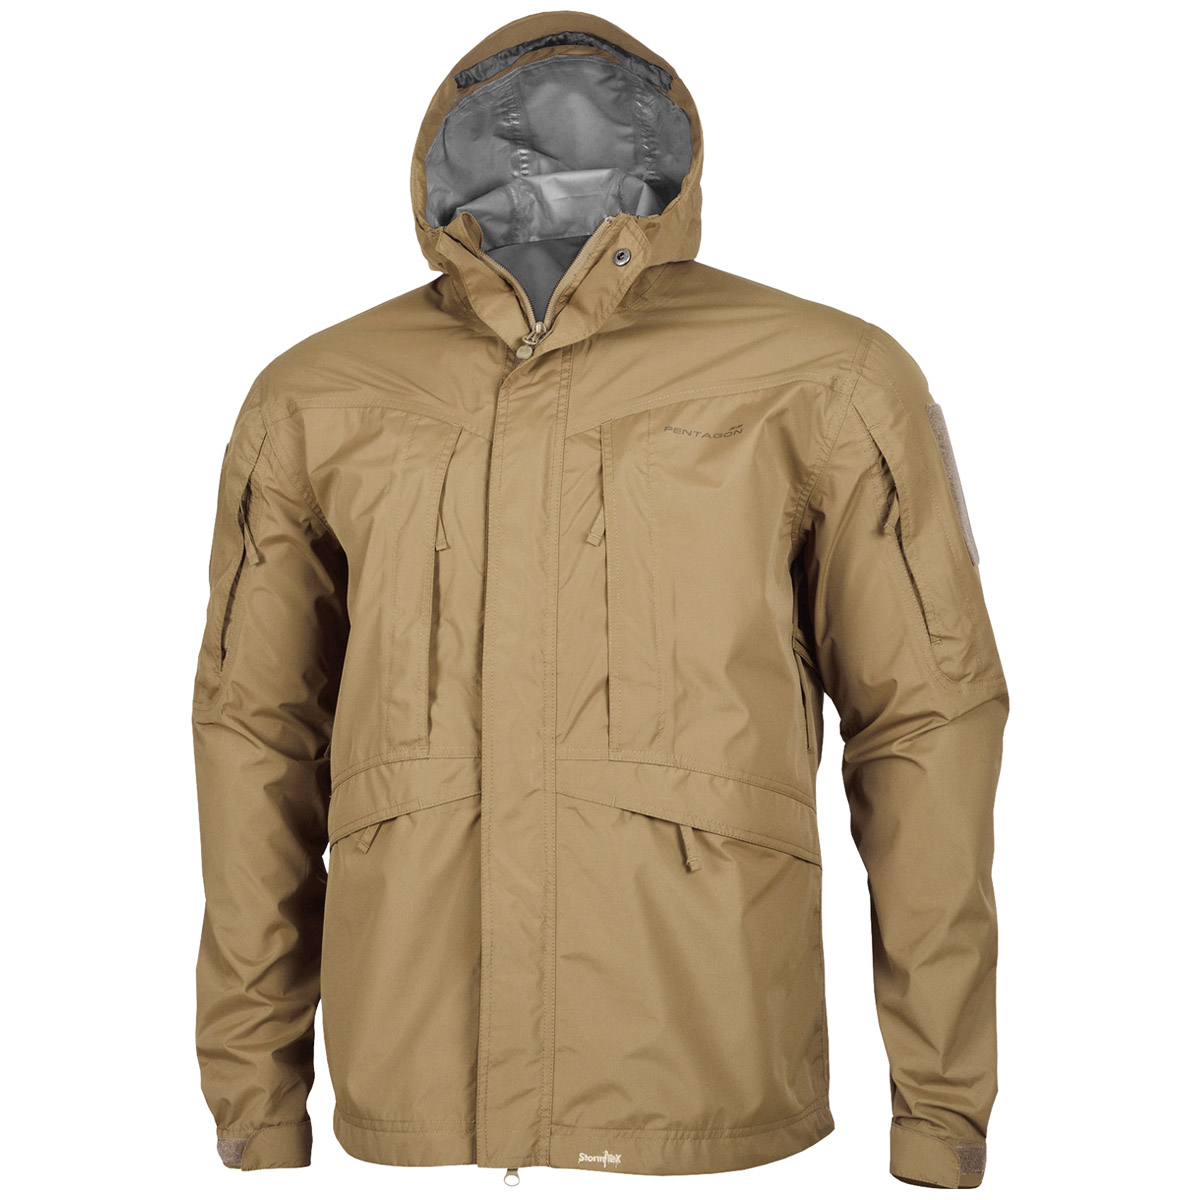 Pentagon Monsoon Soft Shell Tactical Mens Rain Jacket Hiking